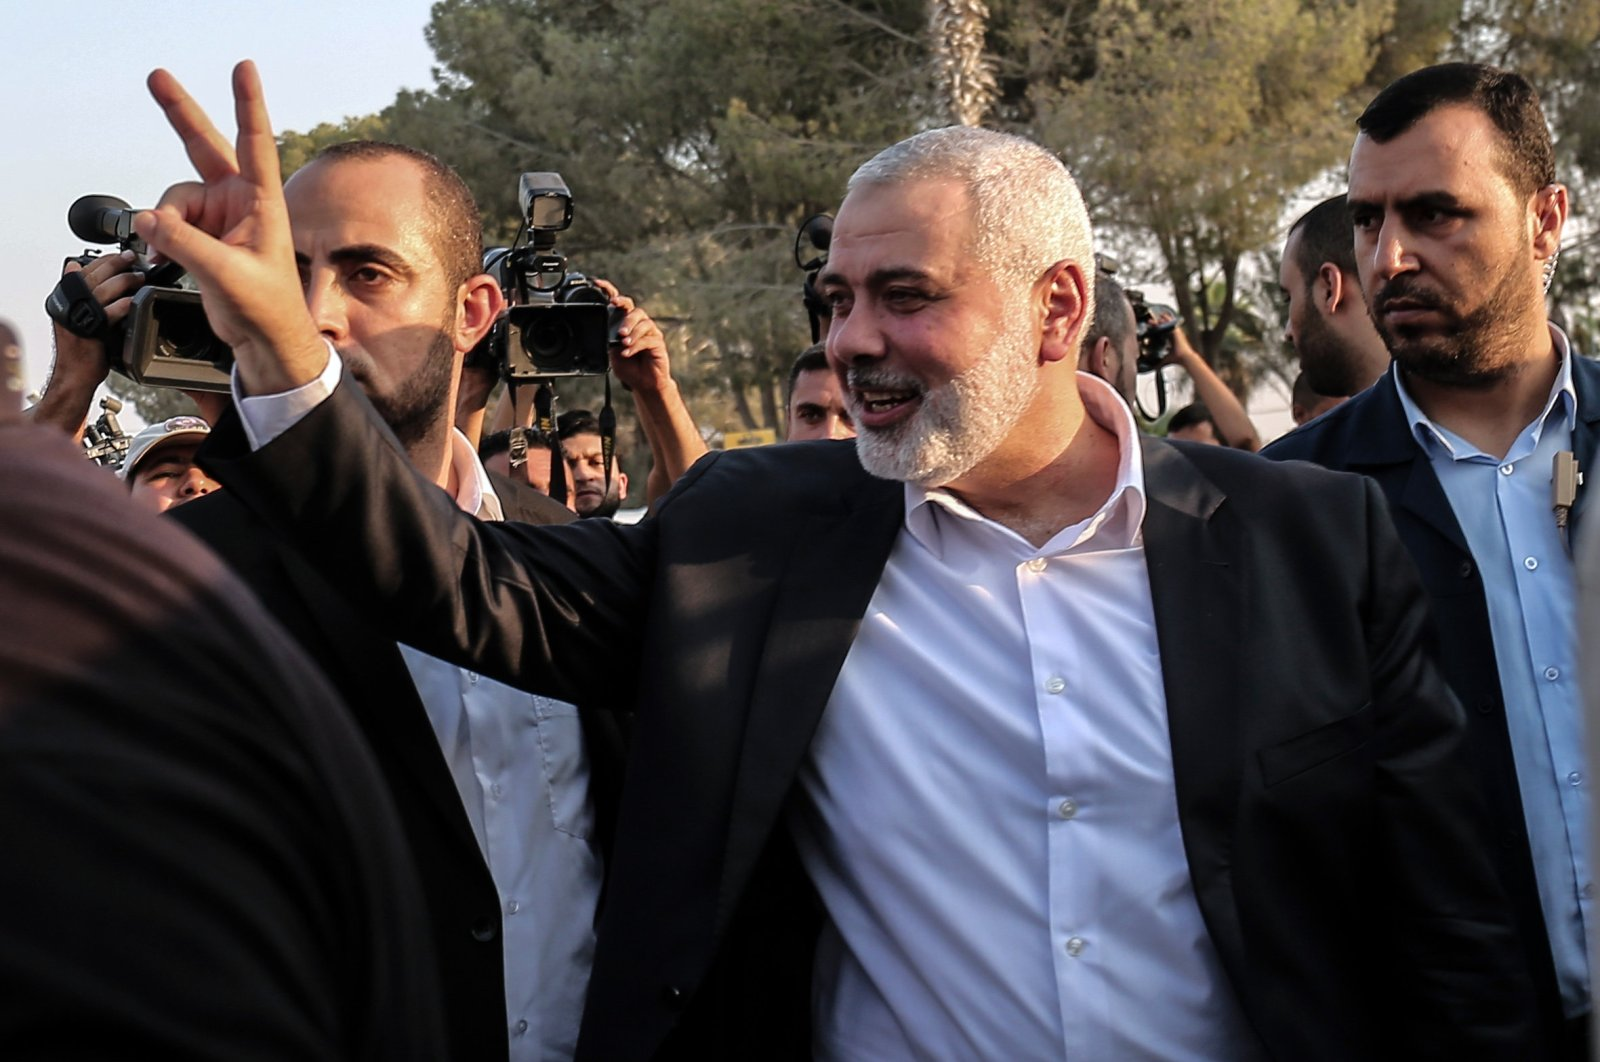 Hamas political chief Ismail Haniyeh flashes the victory gesture upon his arrival on the Palestinian side of the Rafah Border Crossing, in the southern Gaza Strip on Sept. 19, 2017. (AFP File Photo)